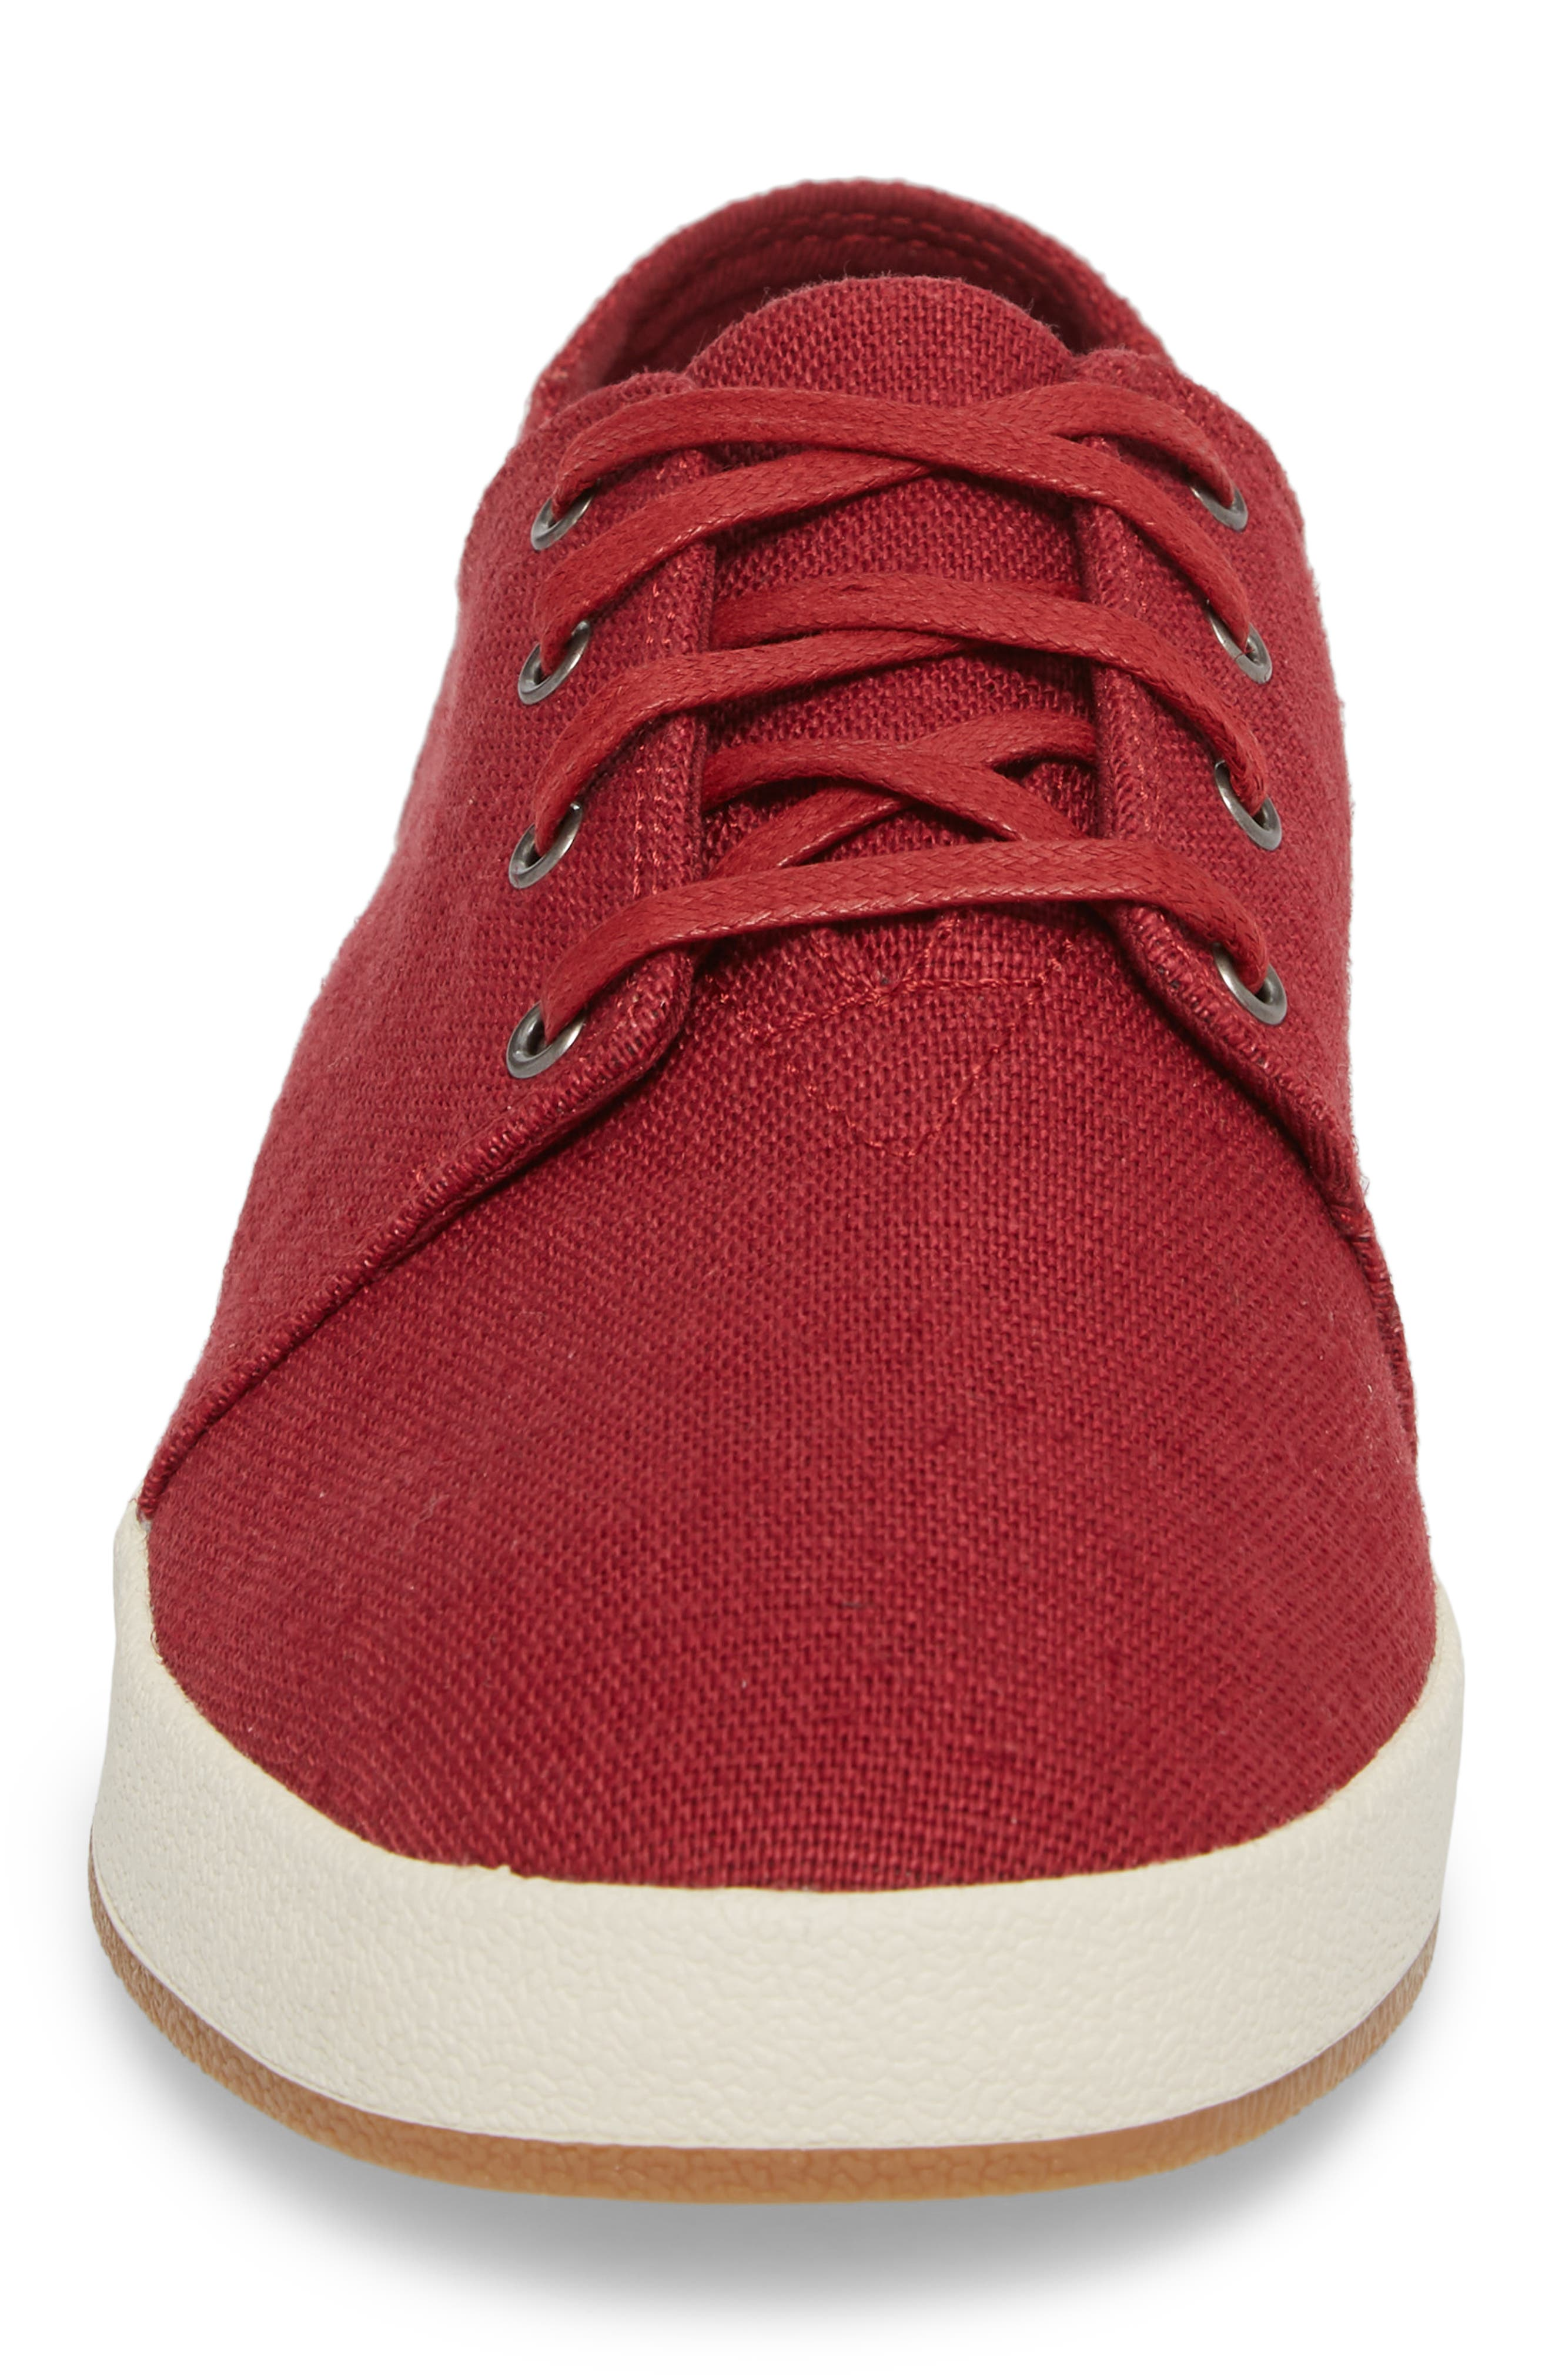 Payton Sneaker,                             Alternate thumbnail 4, color,                             HENNA RED HERITAGE CANVAS